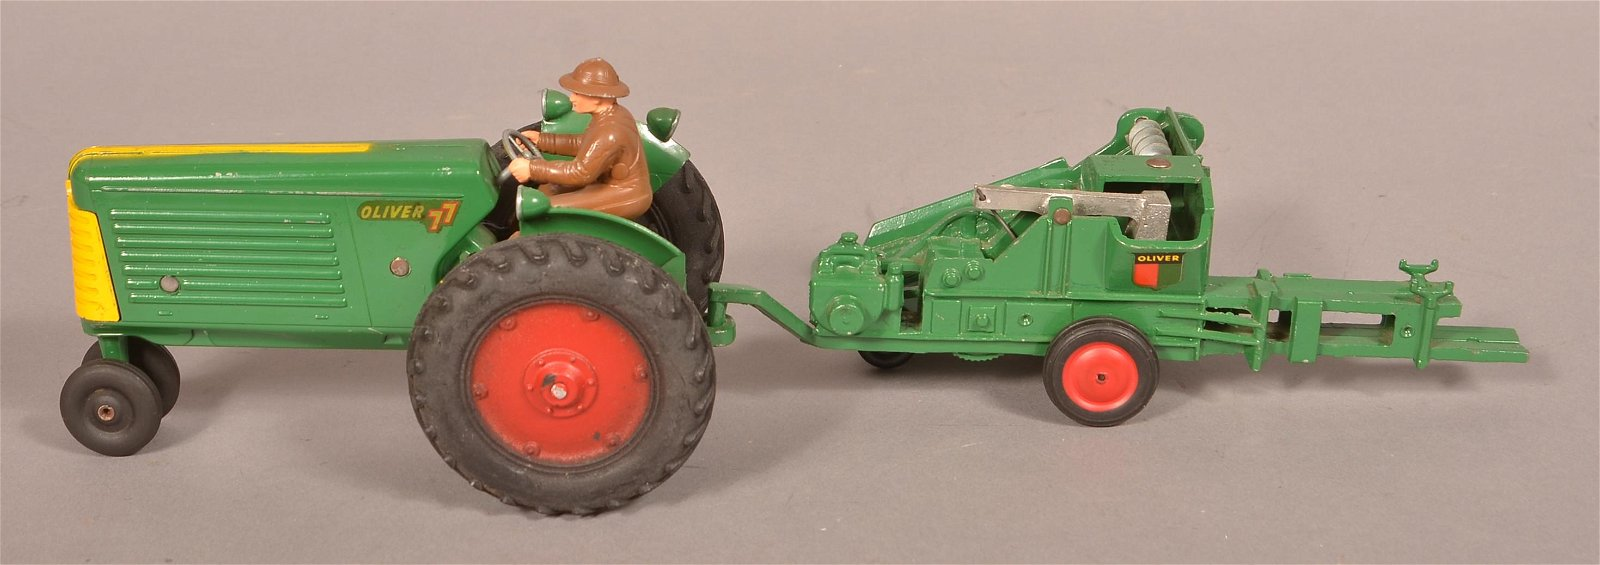 Slik Toy Co. Oliver 77 Tractor with Bailer.